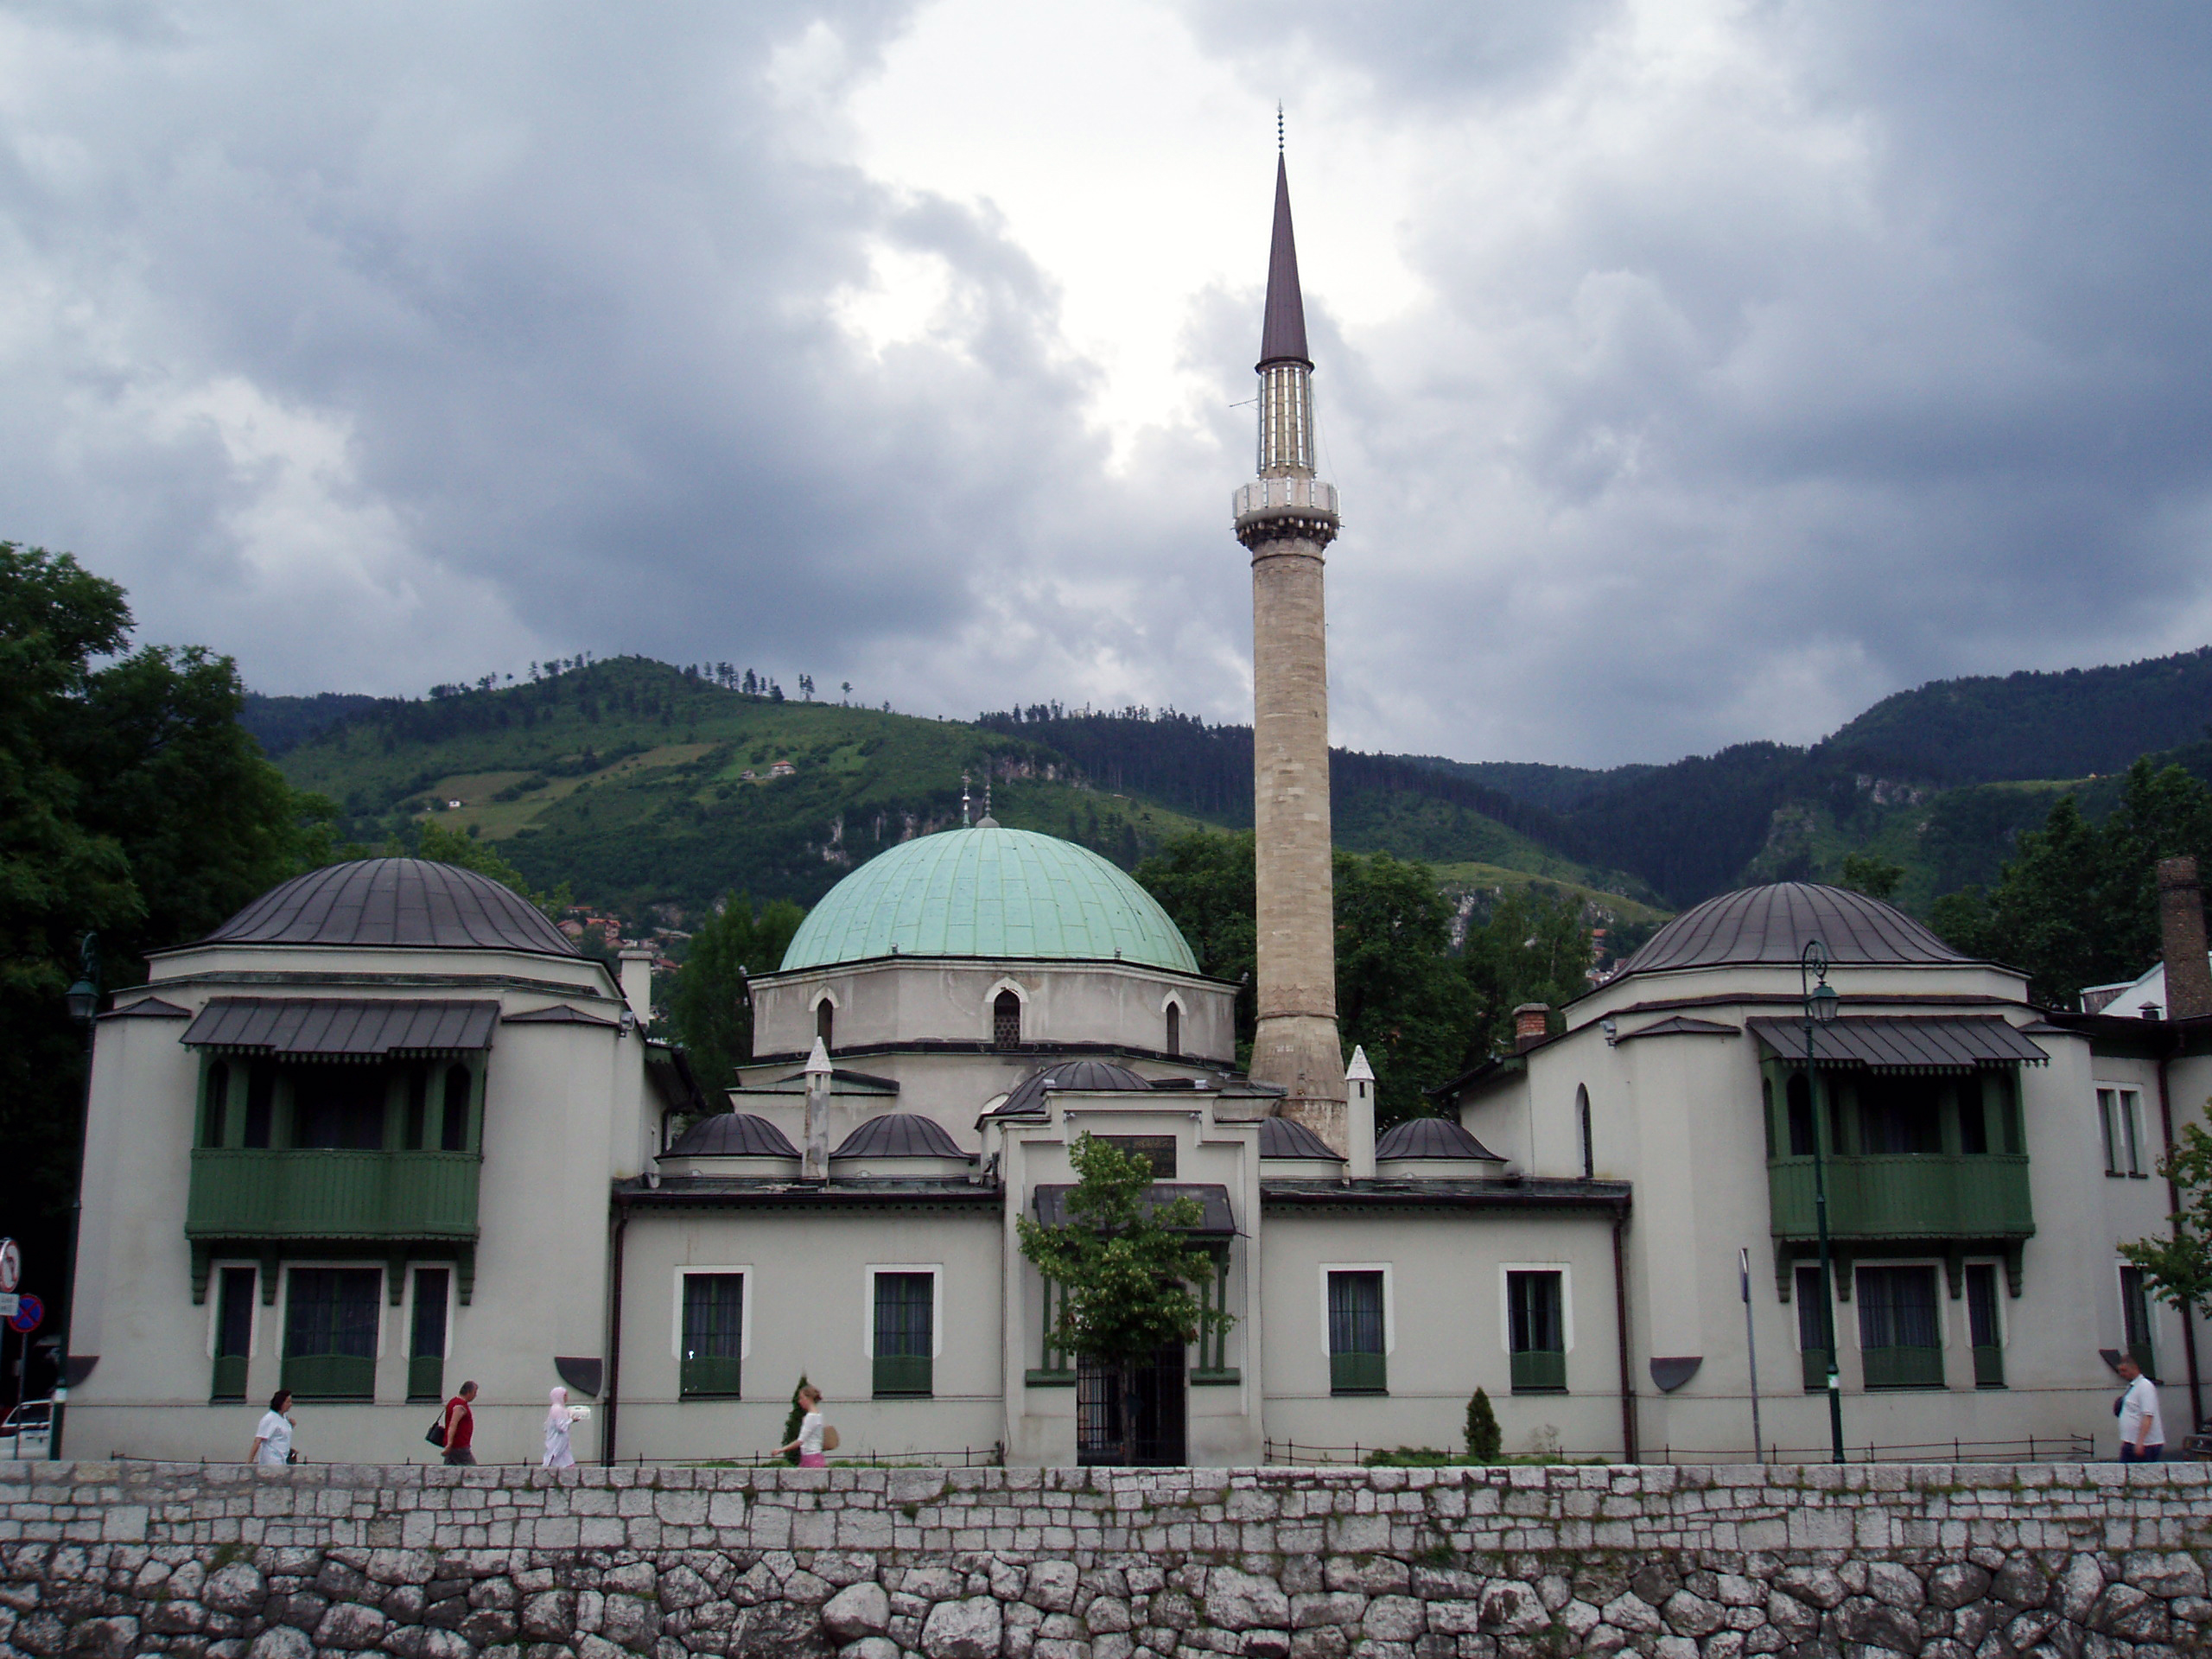 http://upload.wikimedia.org/wikipedia/commons/b/b3/Tsars_Mosque.jpg